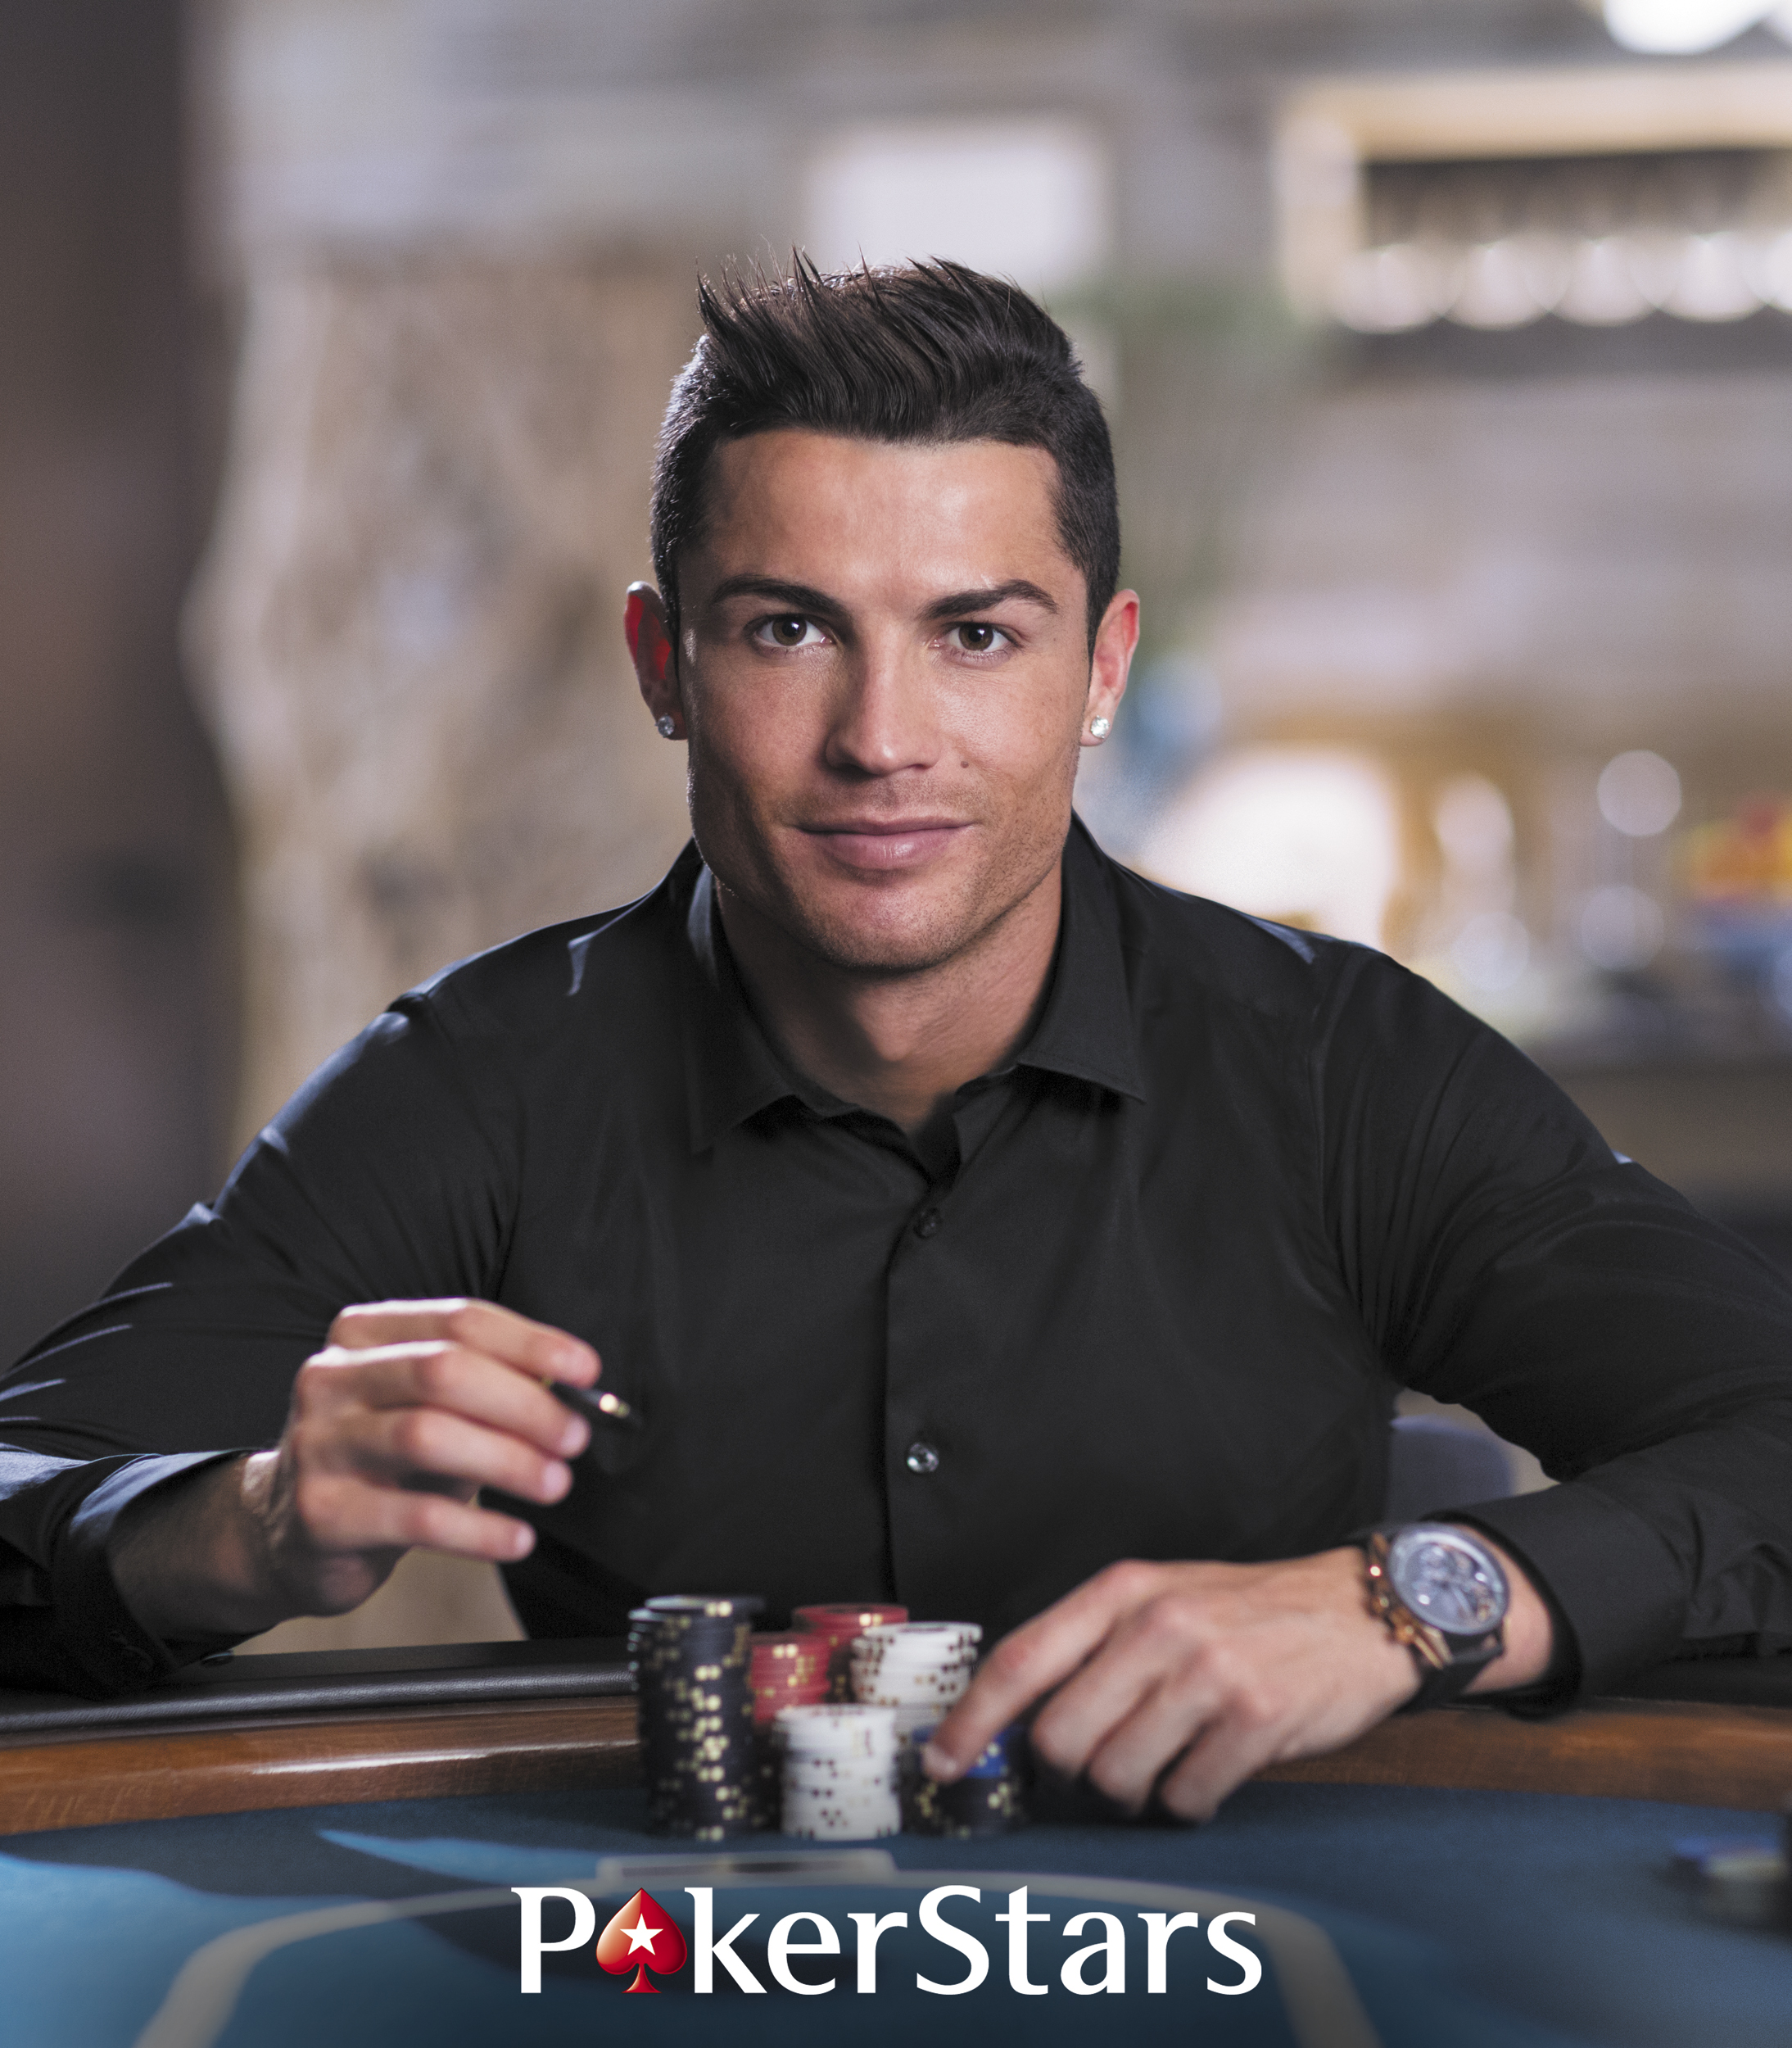 CRISTIANO RONALDO JOINS POKERSTARS